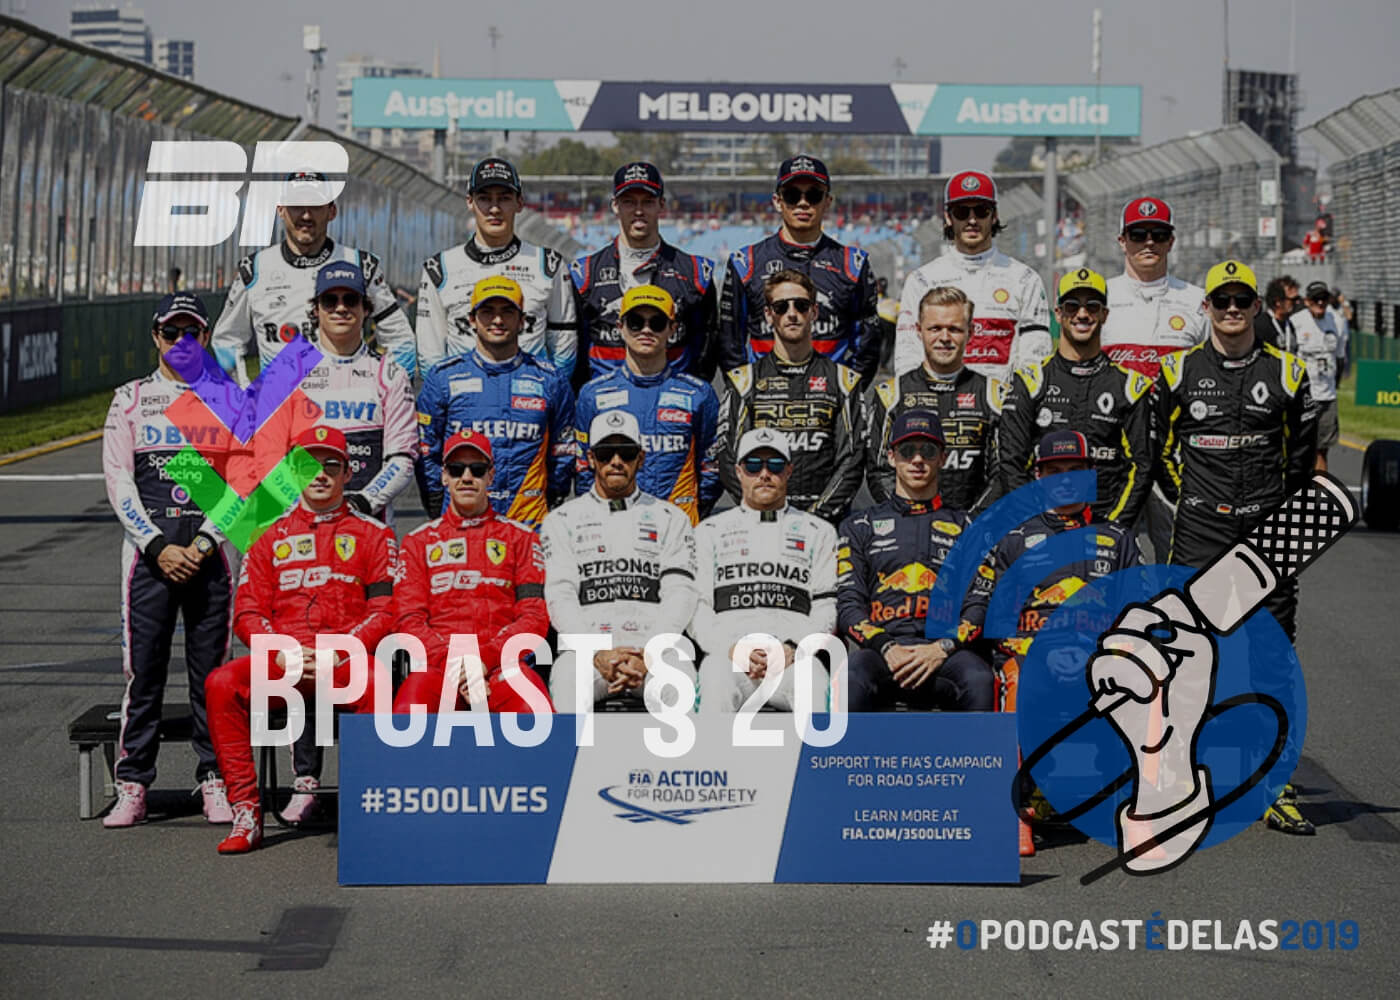 Foto de BPCast § 20 | Review do GP da Austrália de 2019 – #OPODCASTÉDELAS2019